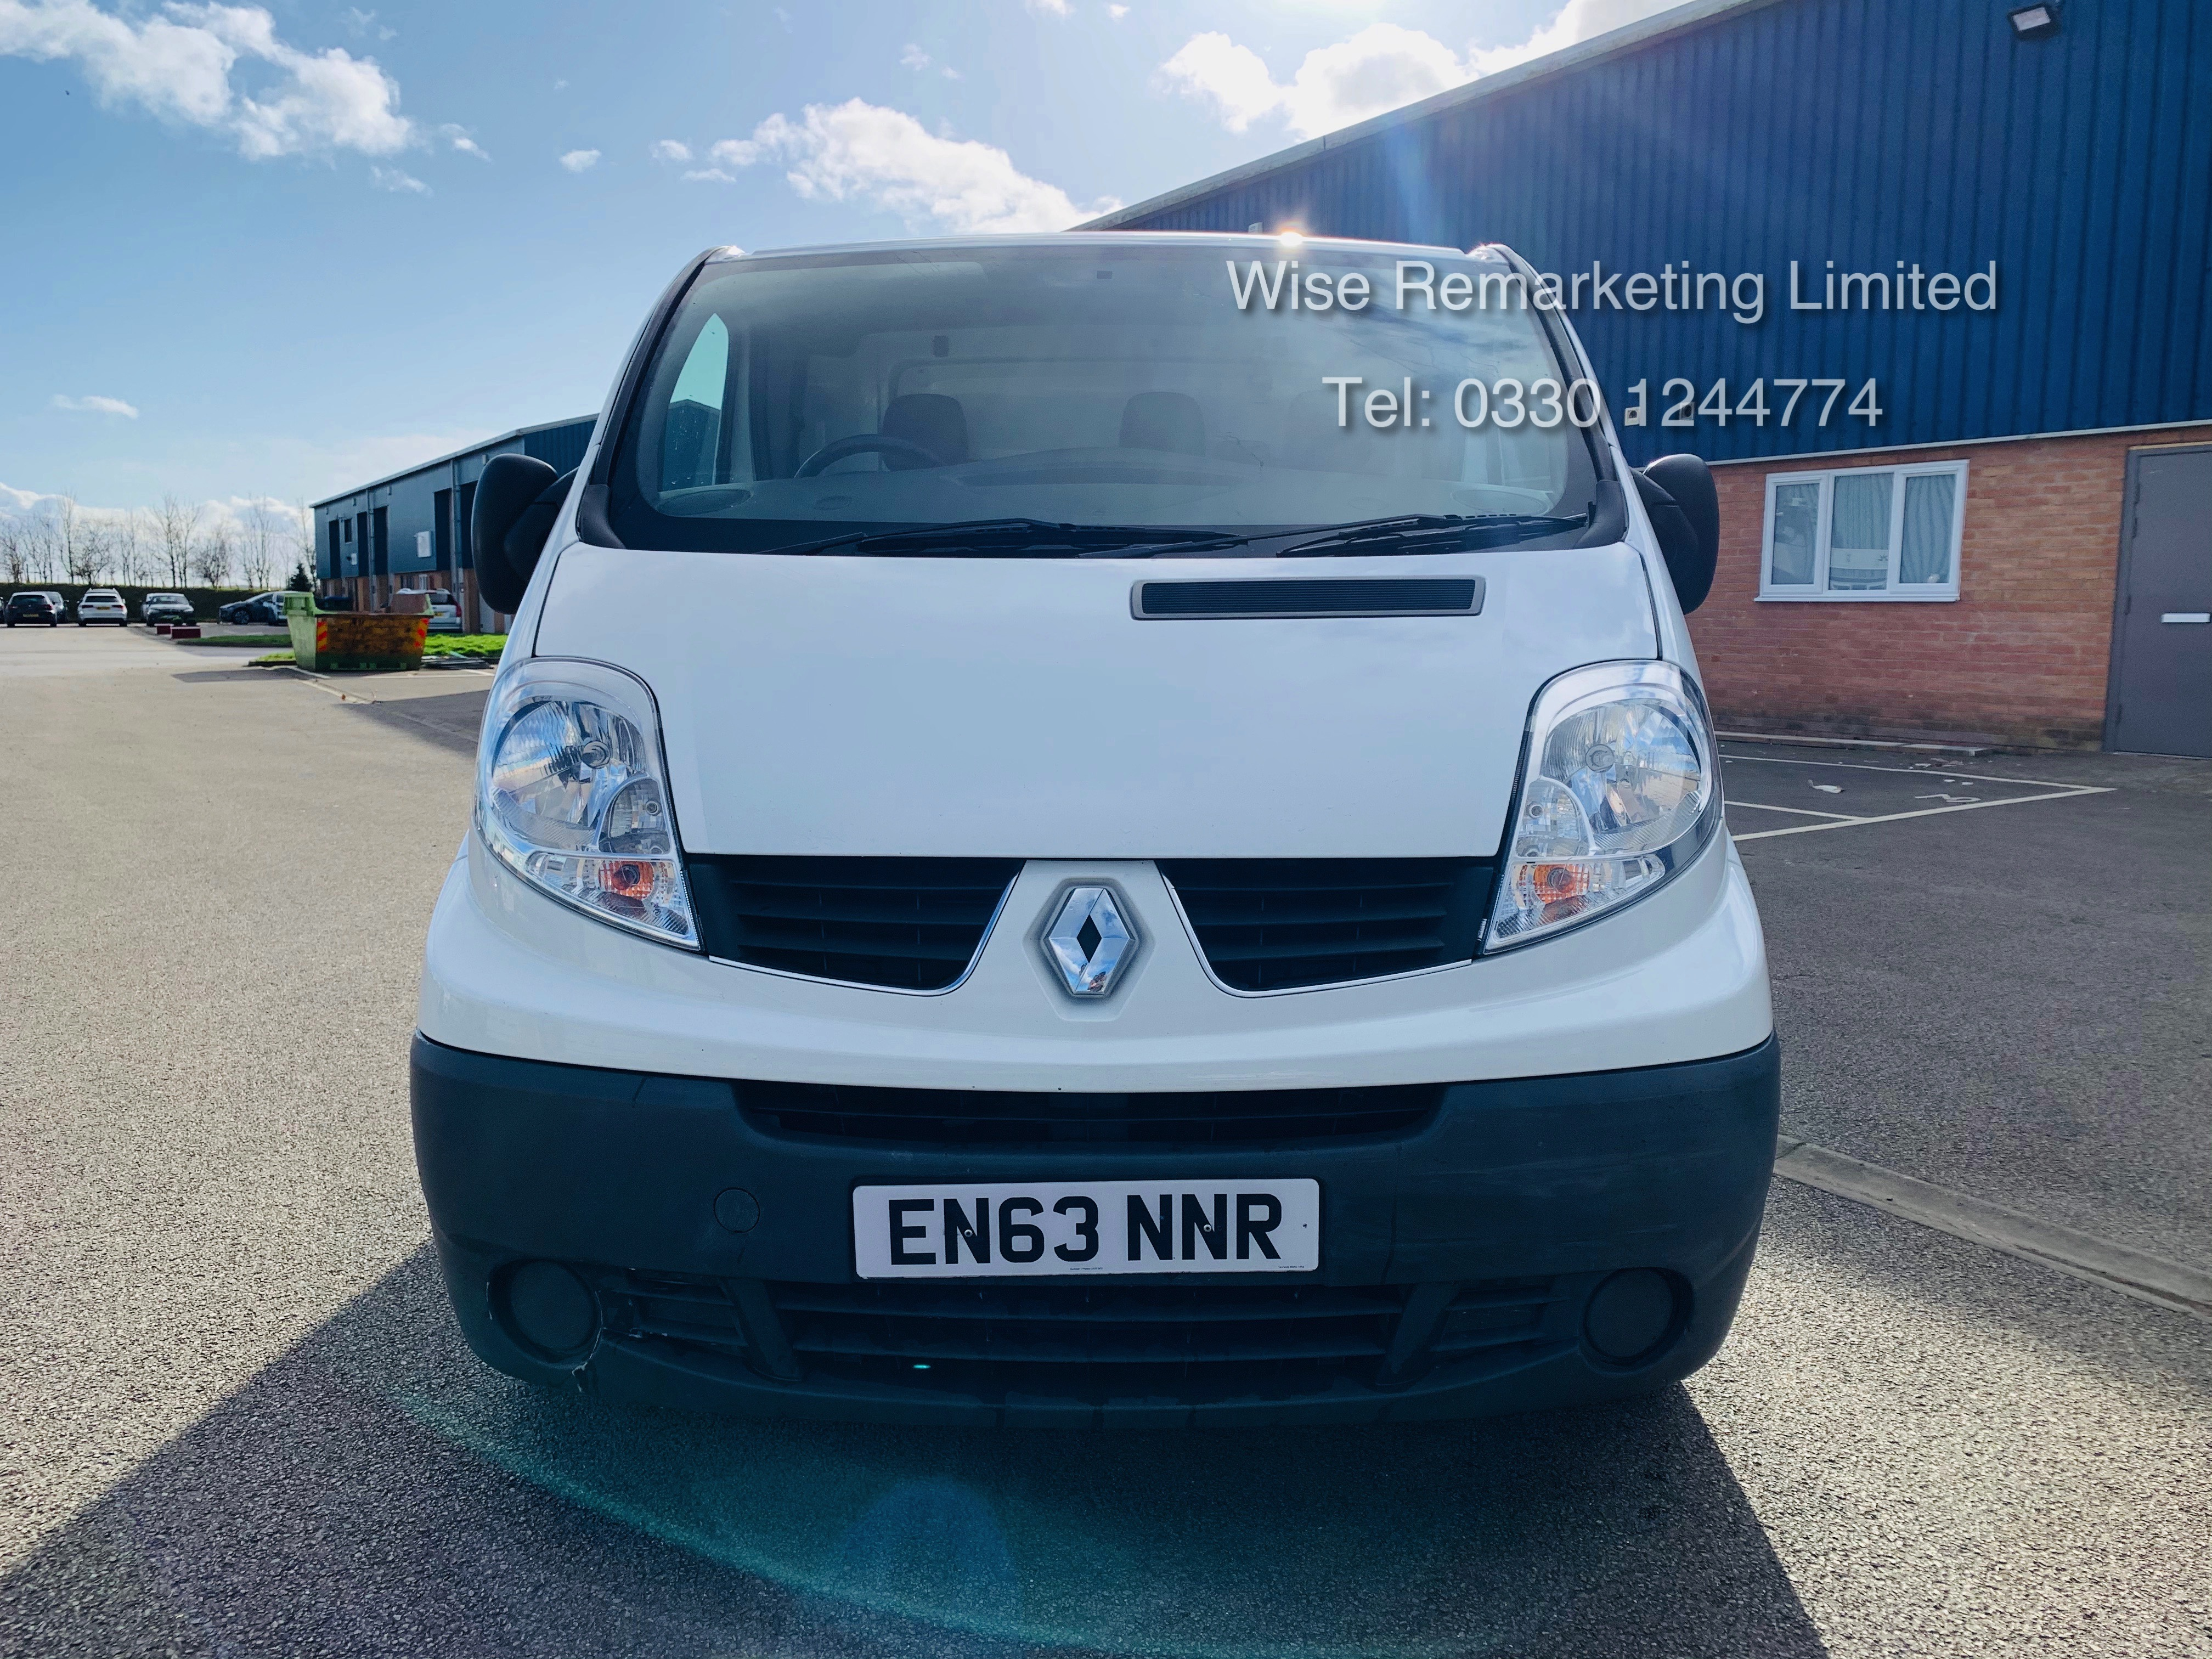 Renault Trafic 2.0 DCI (115 BHP) - 6 Speed - 2014 Reg - Ply Lined - - Image 2 of 21